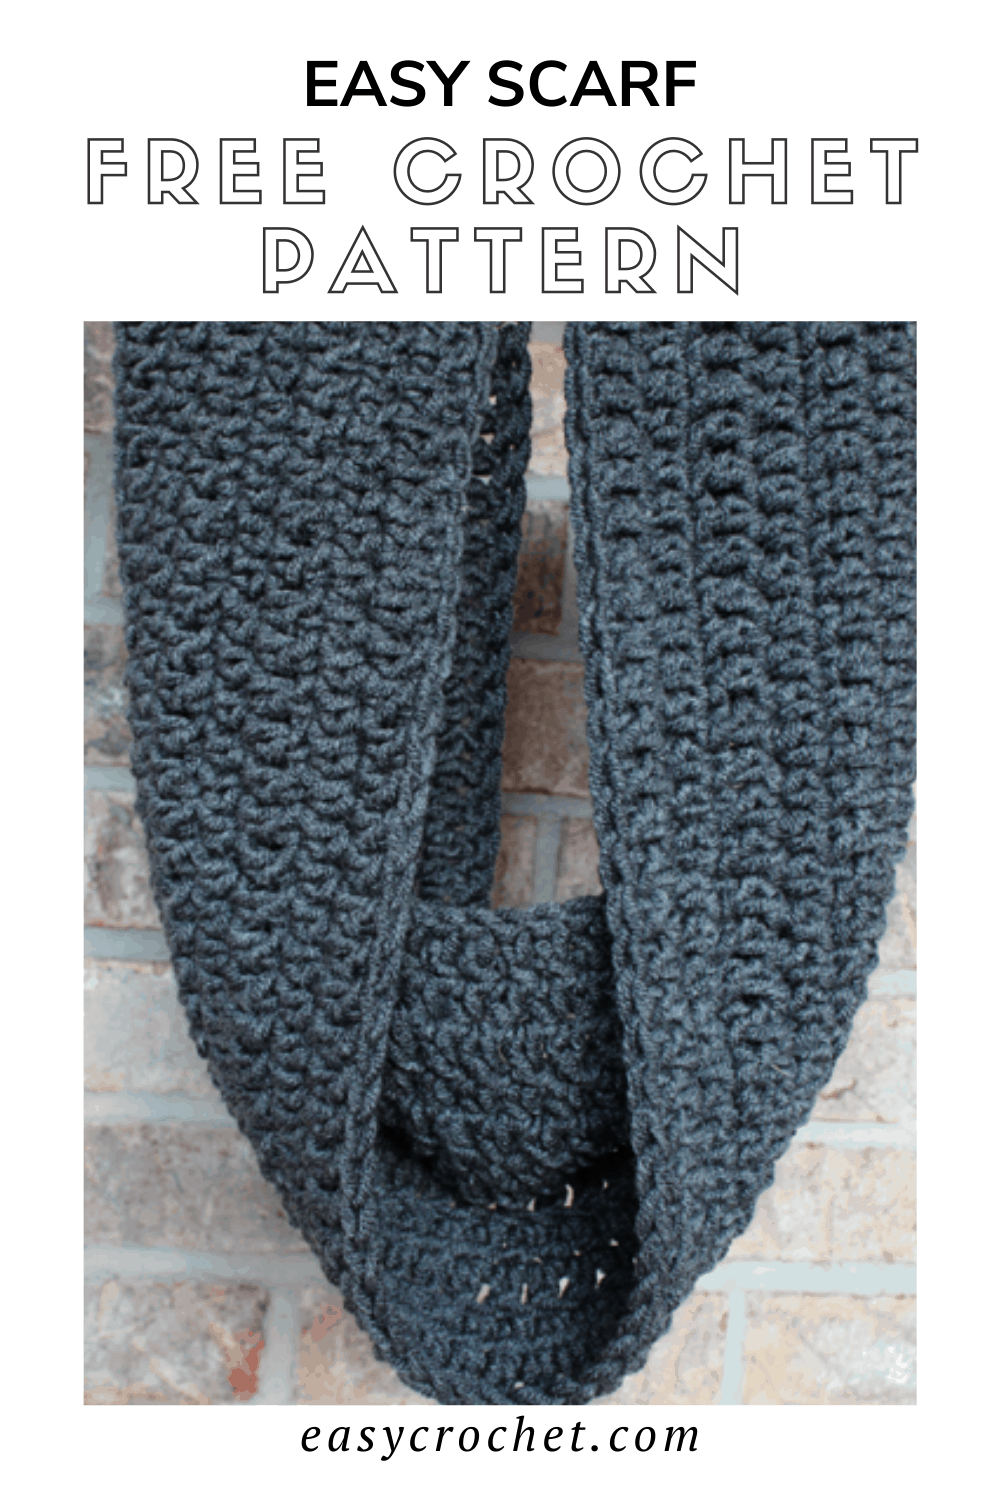 Extra Long Crochet Scarf Pattern - Easy to make and perfect for beginners! Uses just one stitch and works up fast. Find the free crochet pattern at easycrochet.com via @easycrochetcom